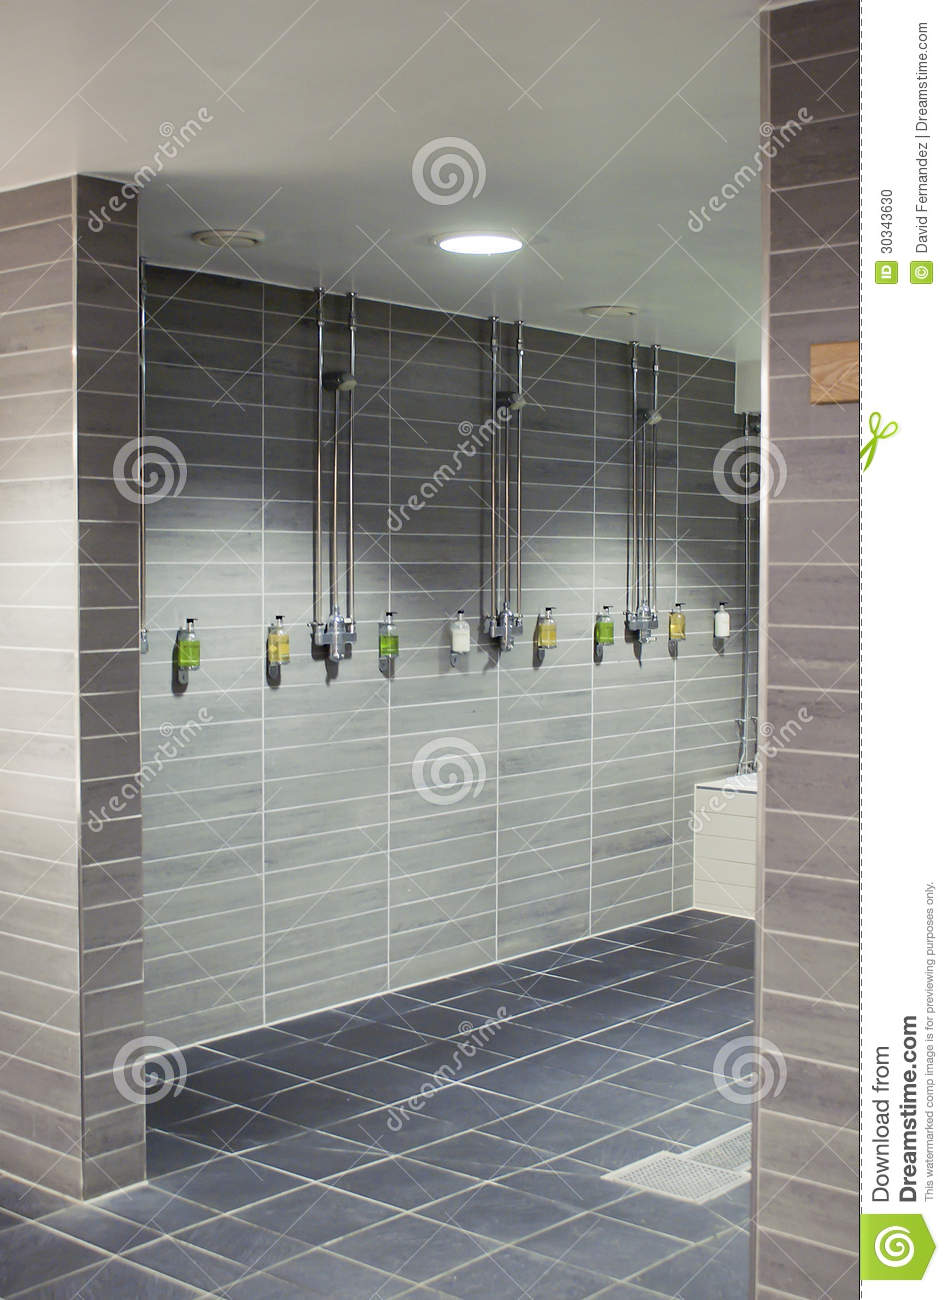 Stylish Shower Room Stock Photo Image Of Clean Tiled